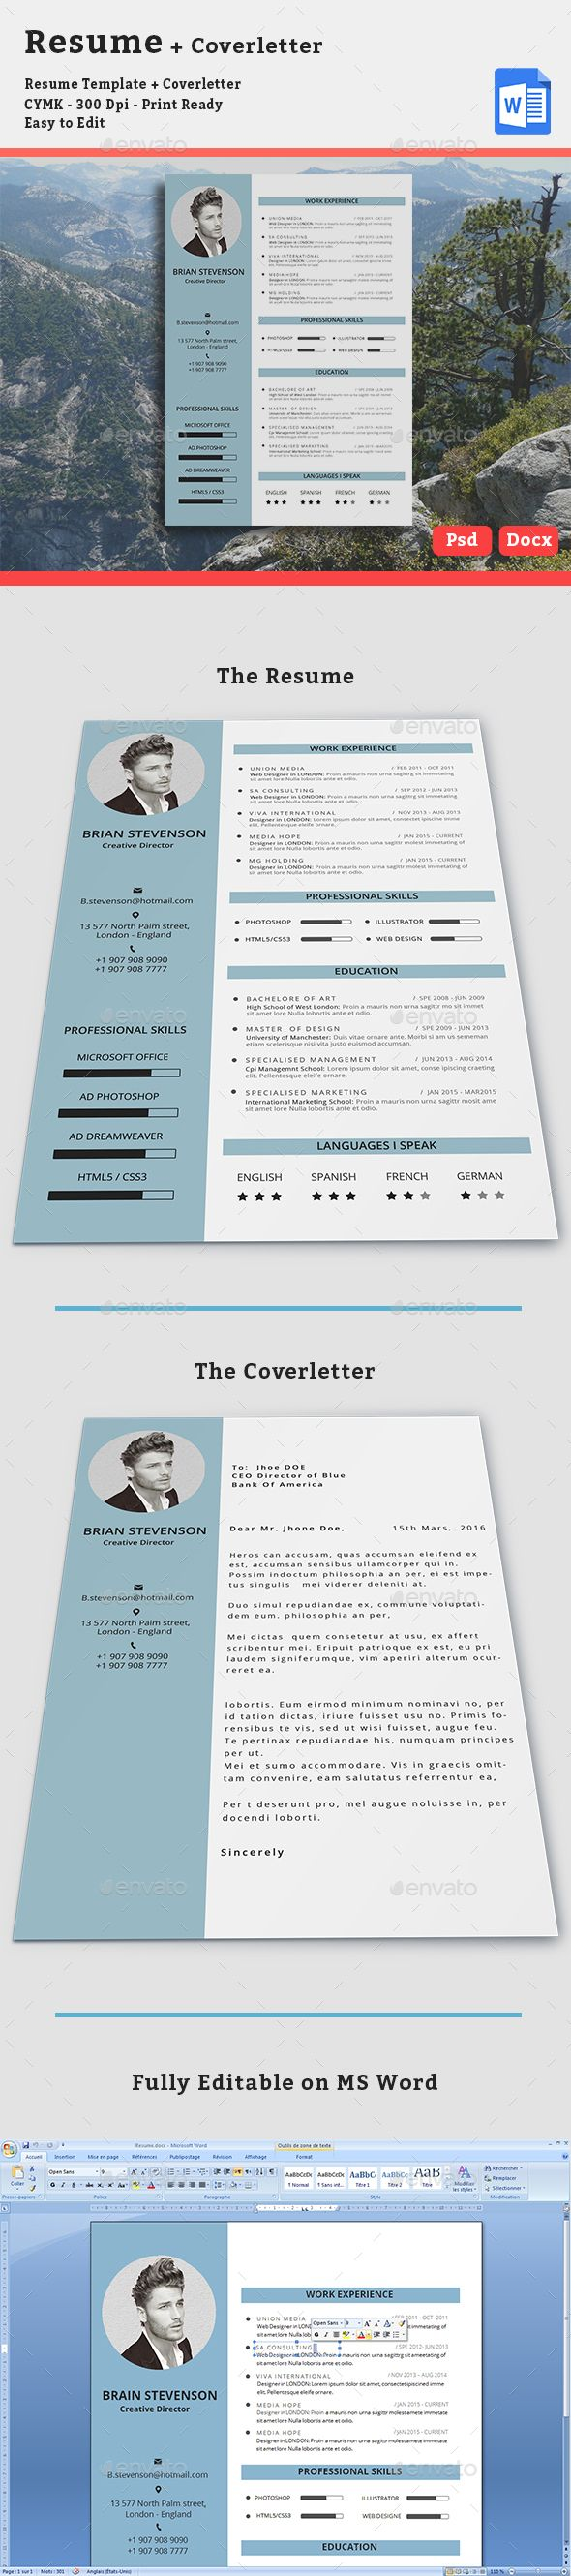 cv - The Perfect Resume Template